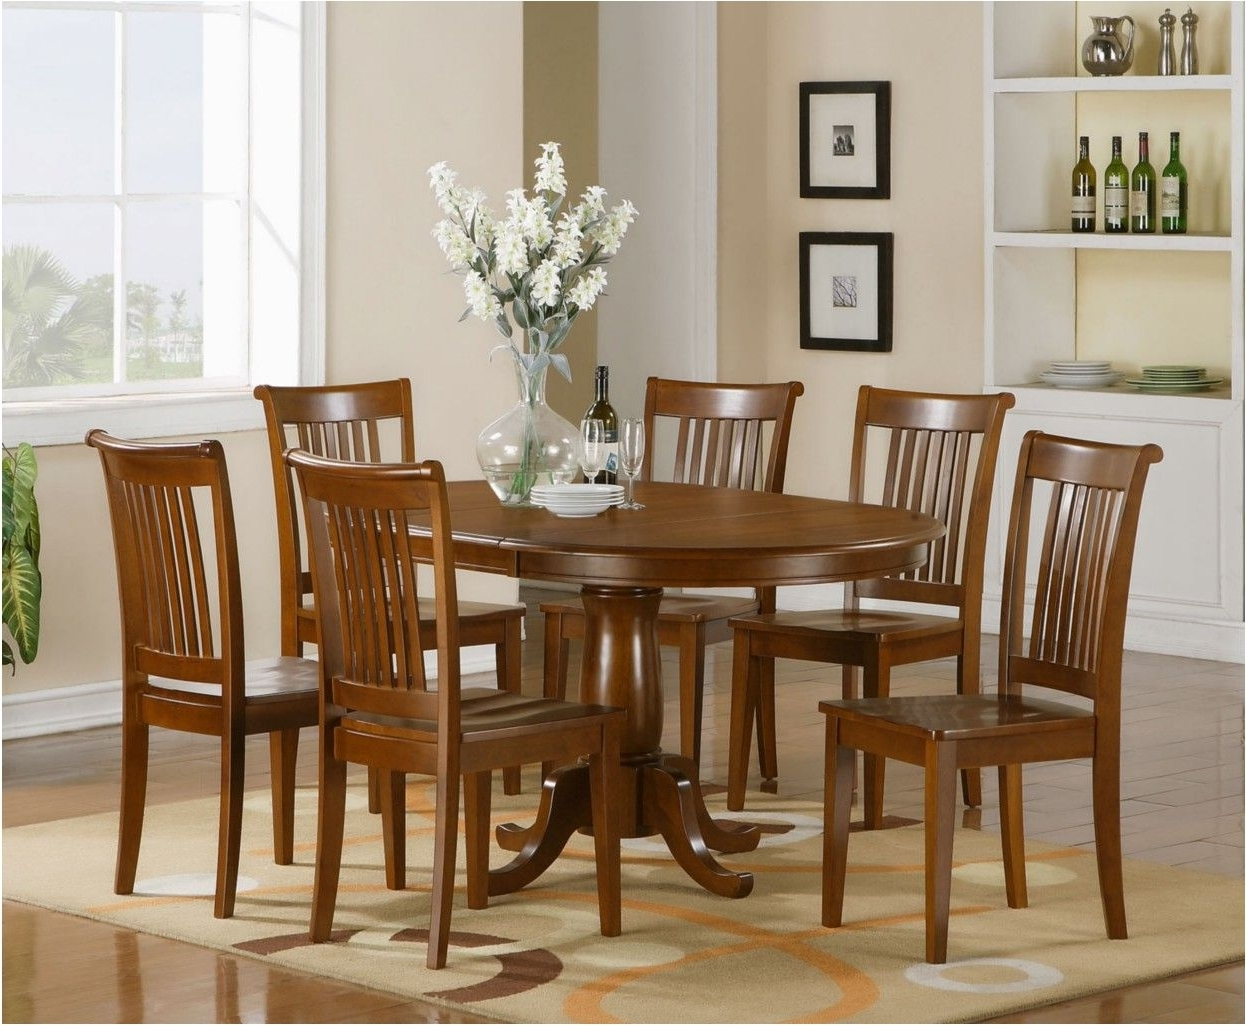 Delightful Dining Room Chair Sets 6 Dining Room Decor Ideas And For Well Known Dining Table Chair Sets (Gallery 11 of 25)